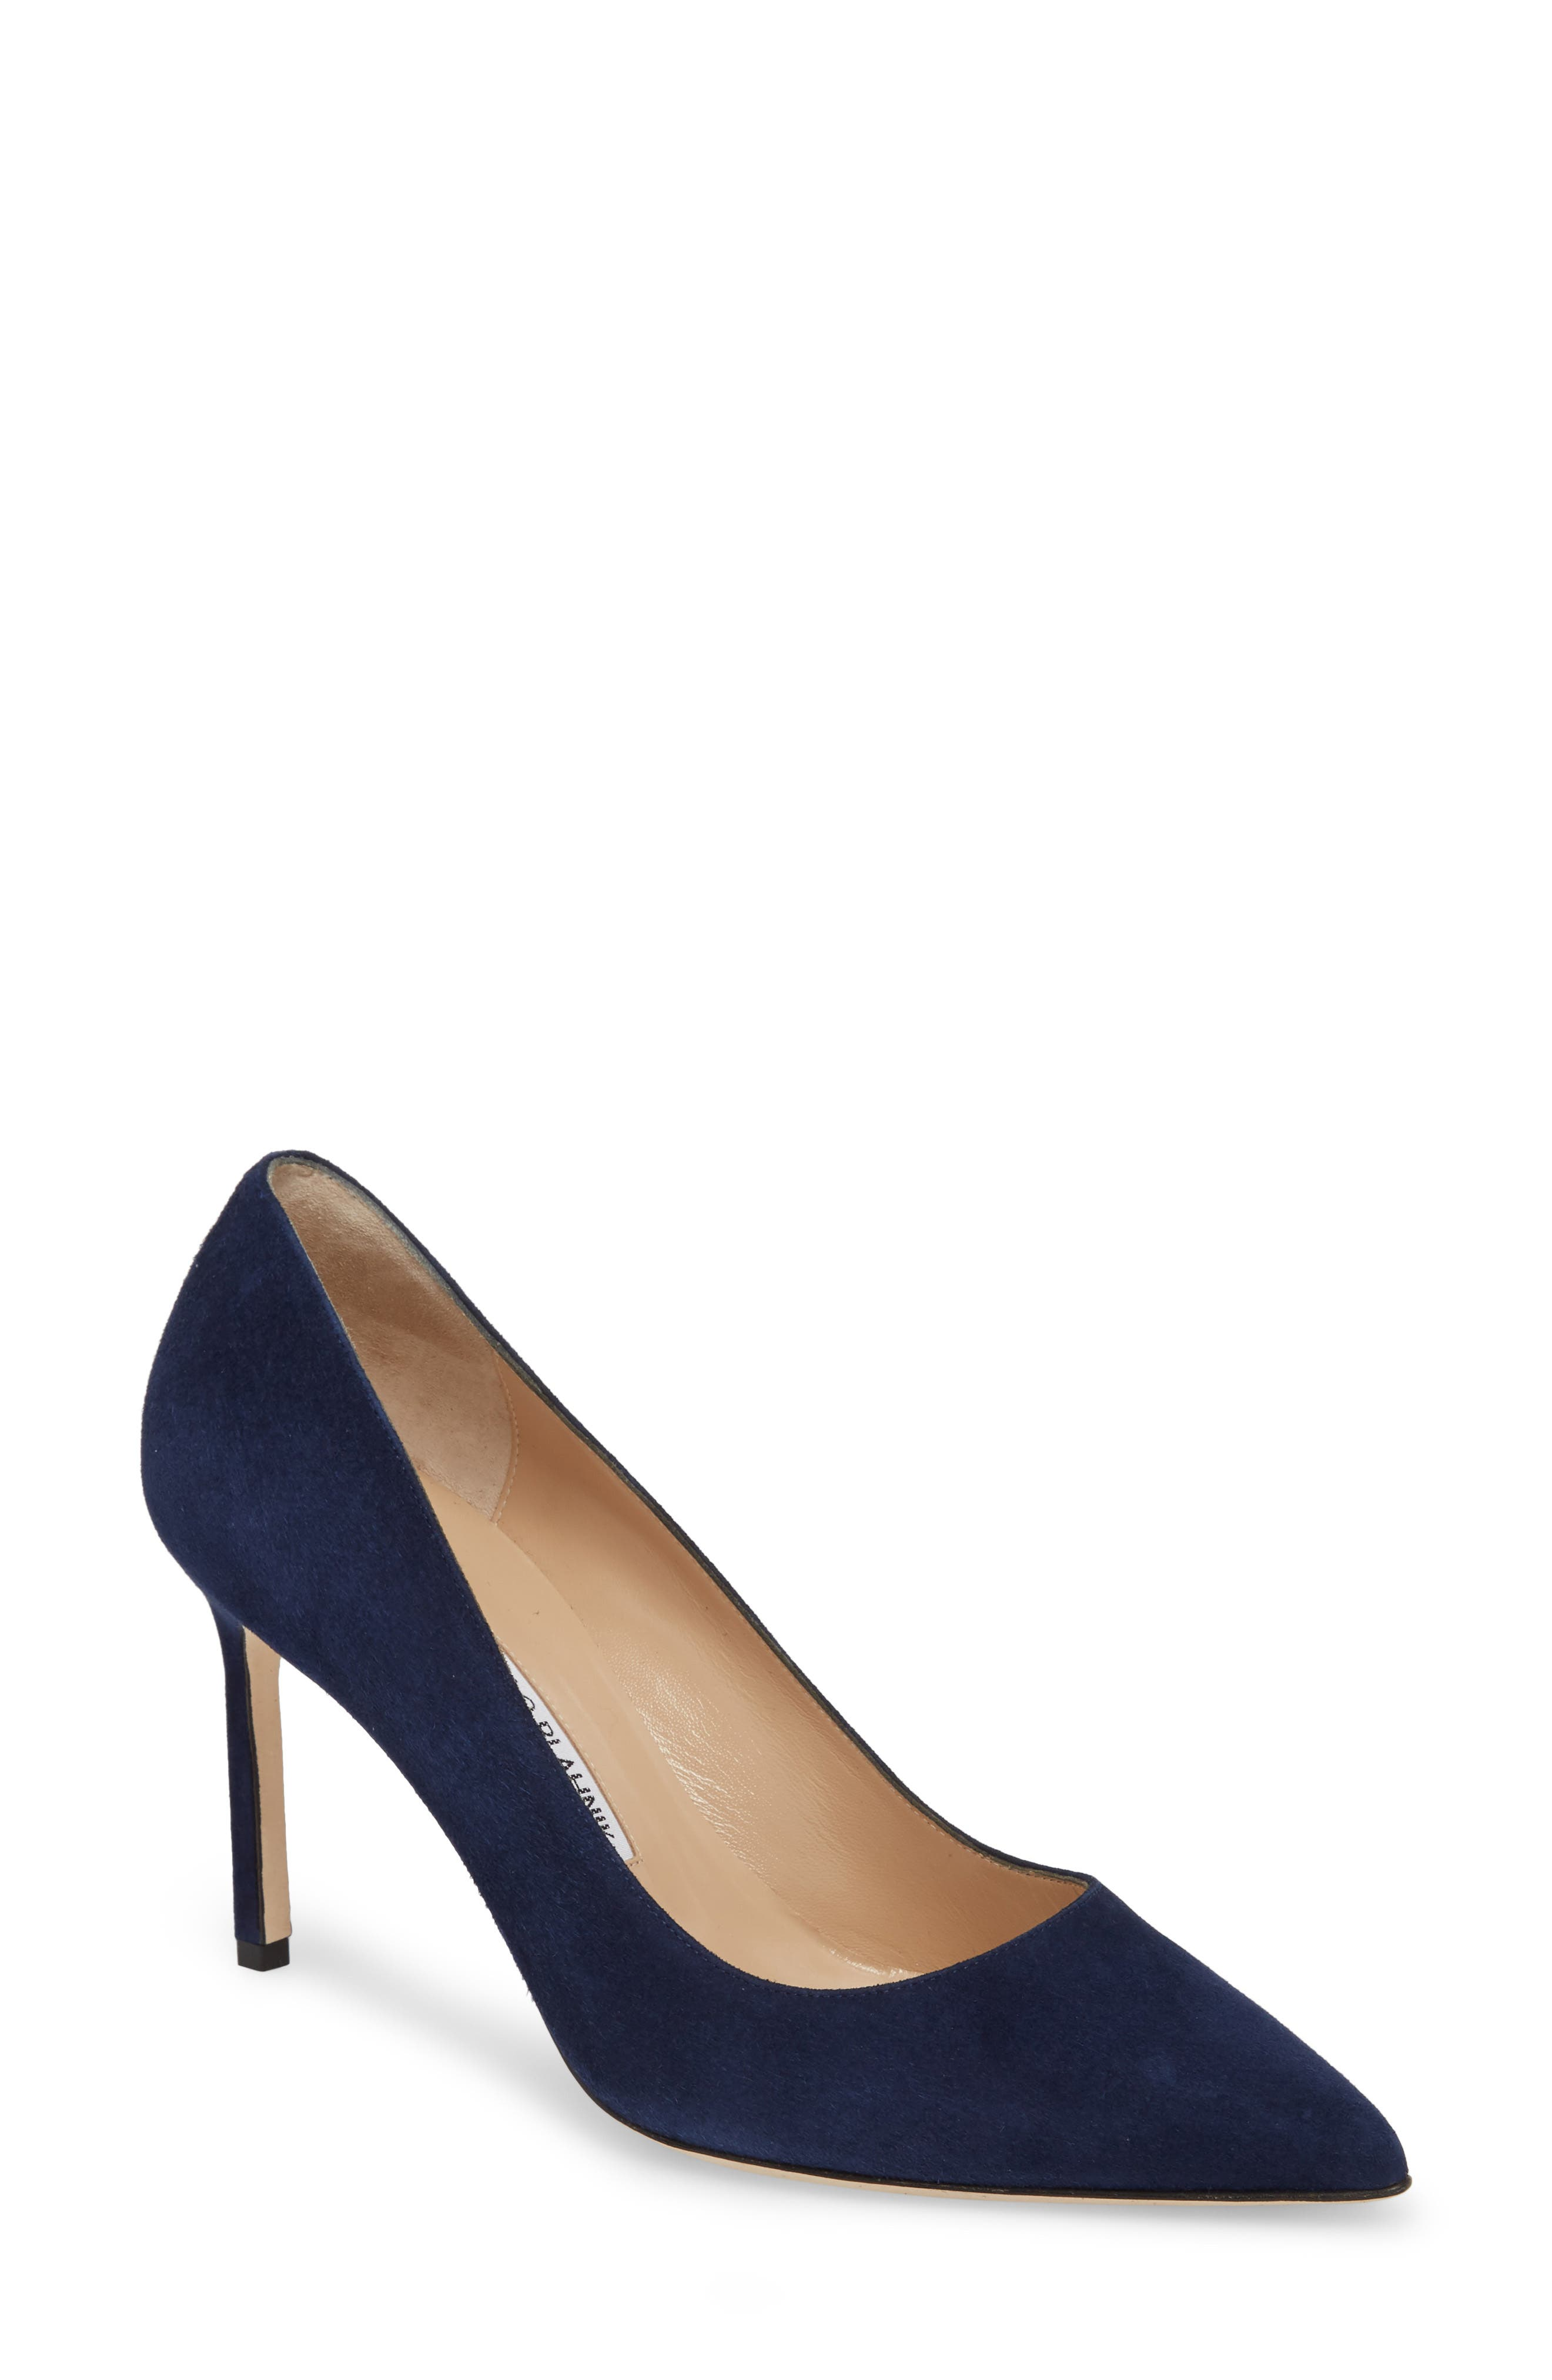 BB Pointy Toe Pump,                             Main thumbnail 1, color,                             NAVY SUEDE